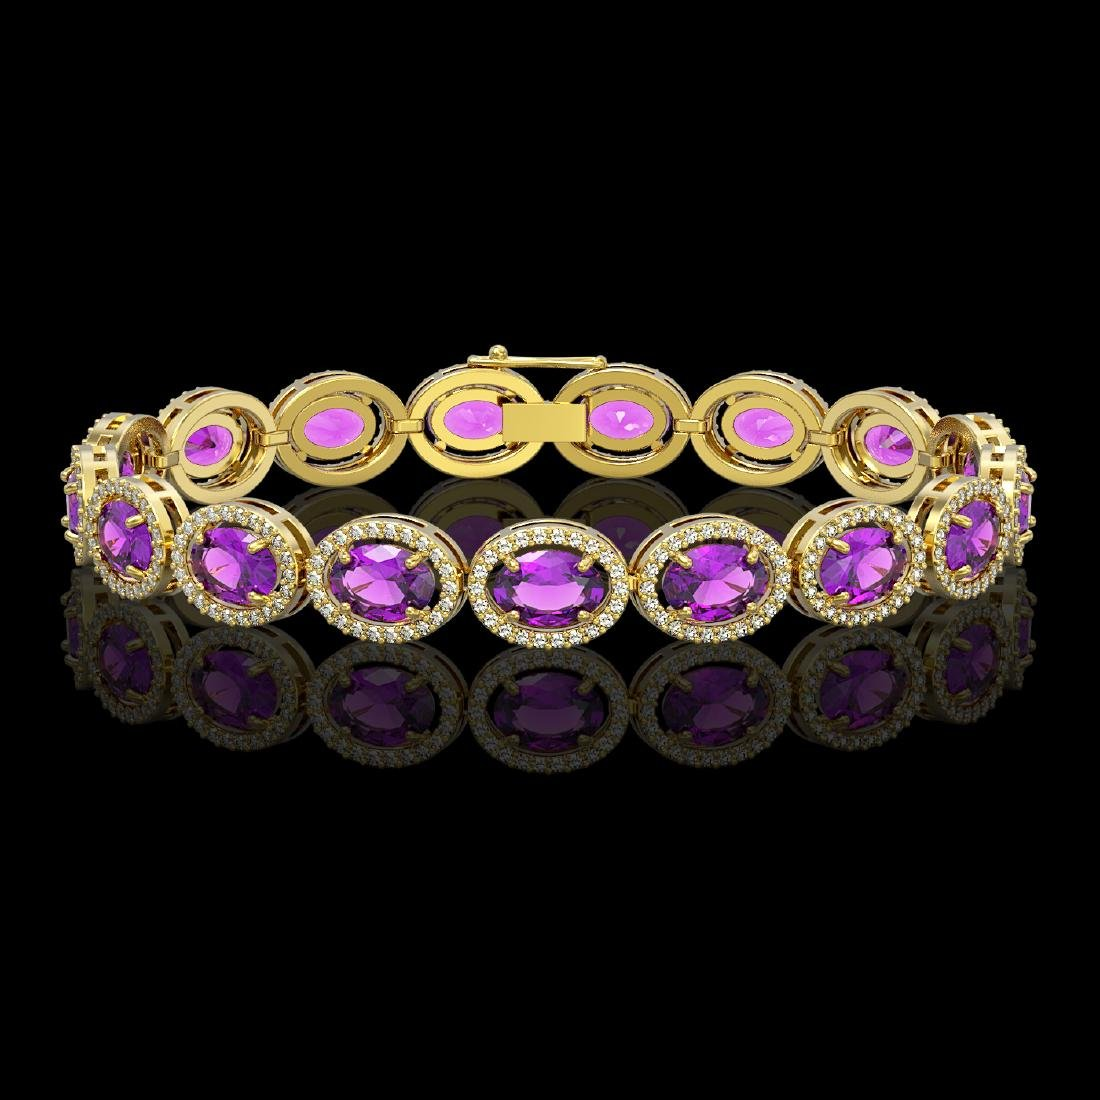 19.82 CTW Amethyst & Diamond Halo Bracelet 10K Yellow